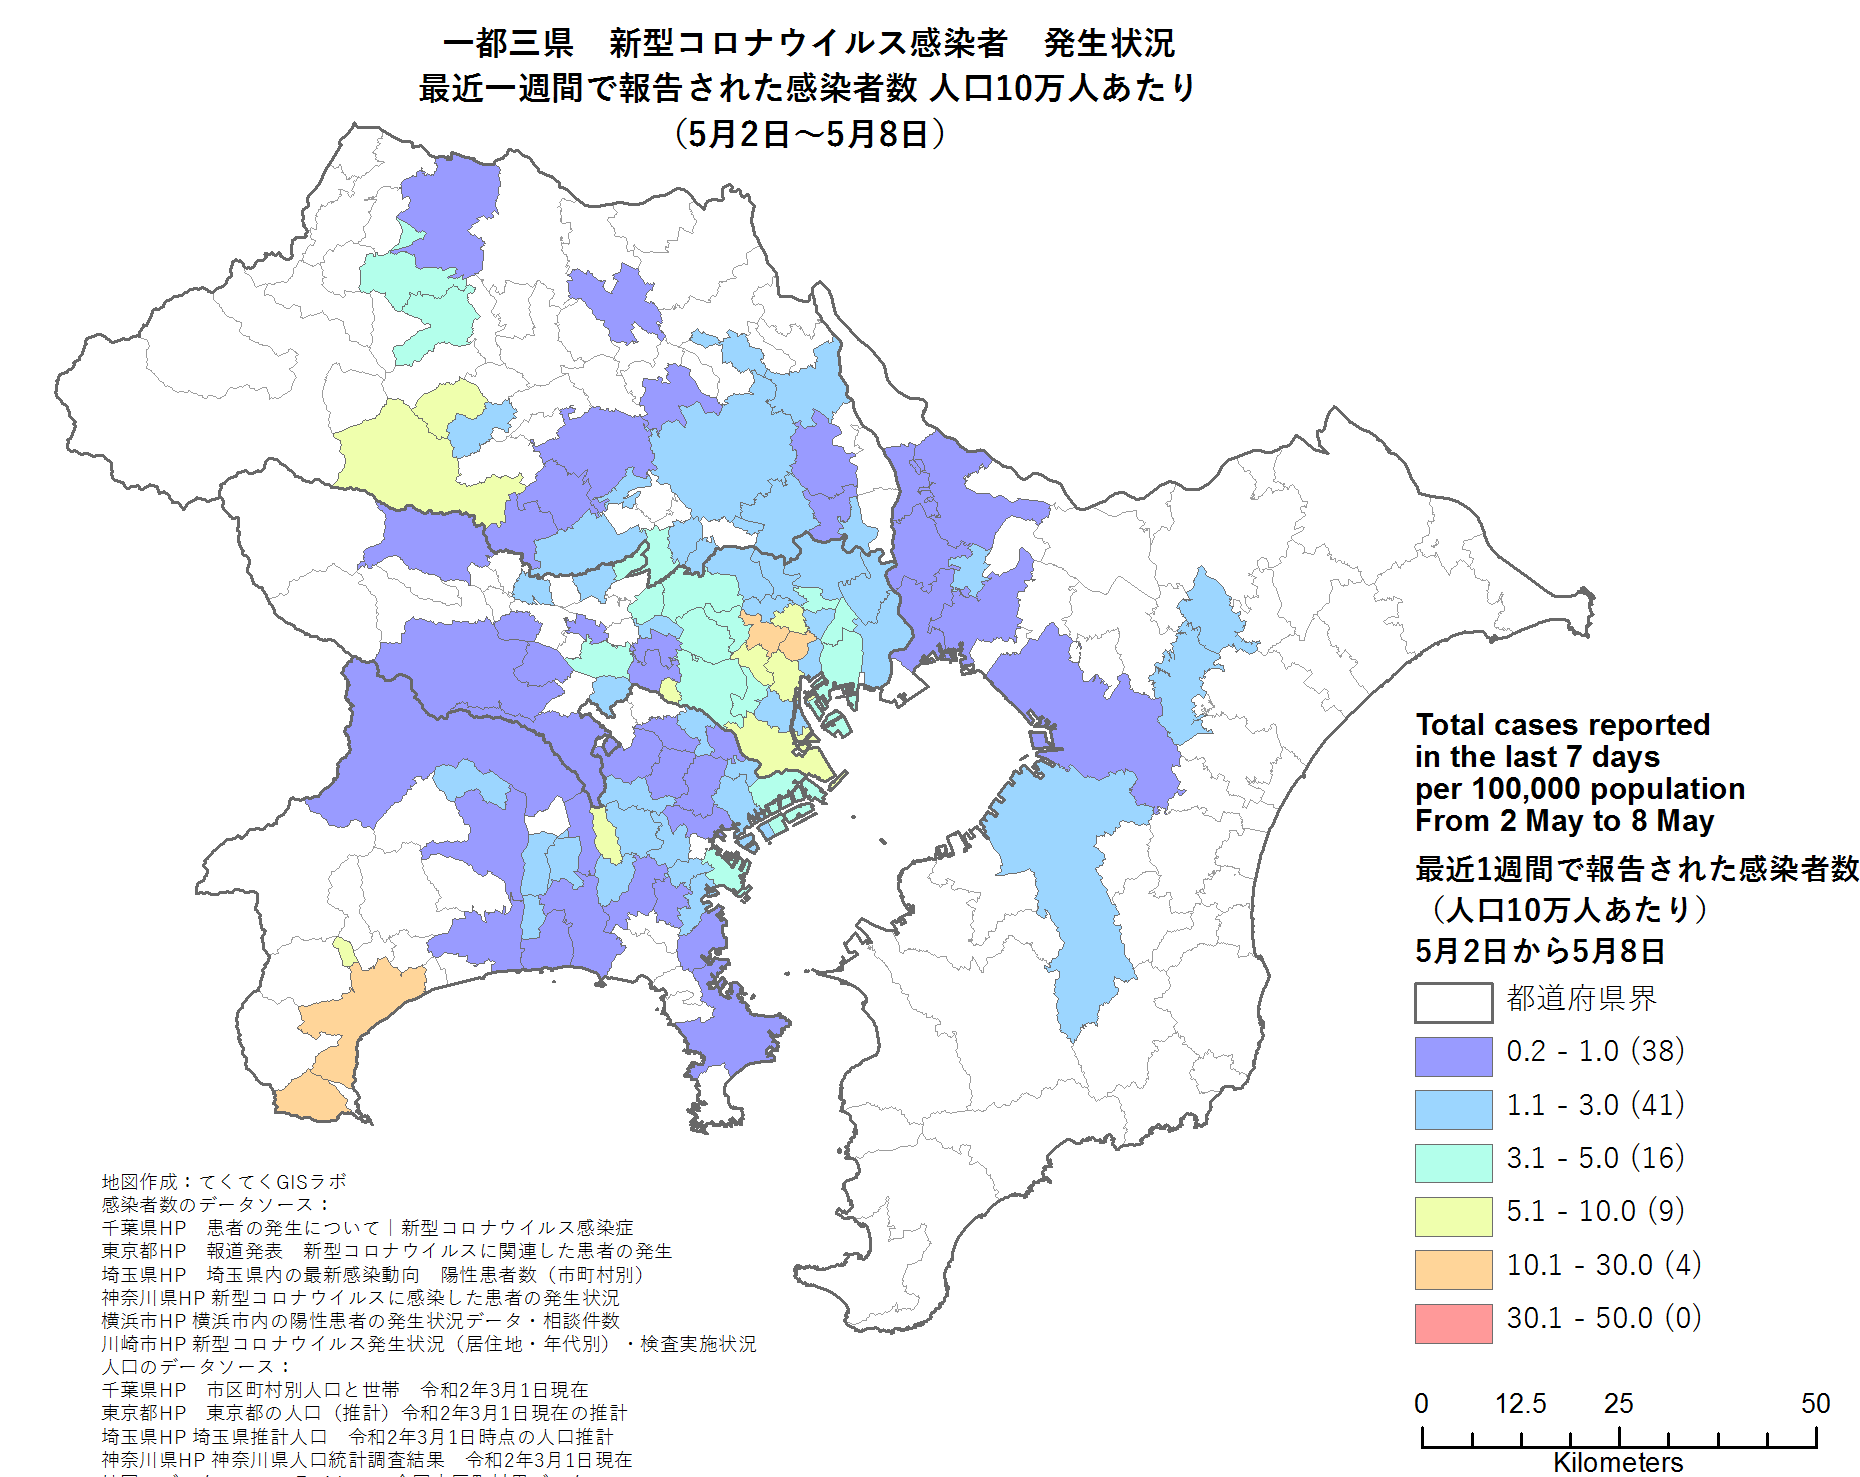 Number of cases per 100,000 population around Tokyo from 2 May to 8 May